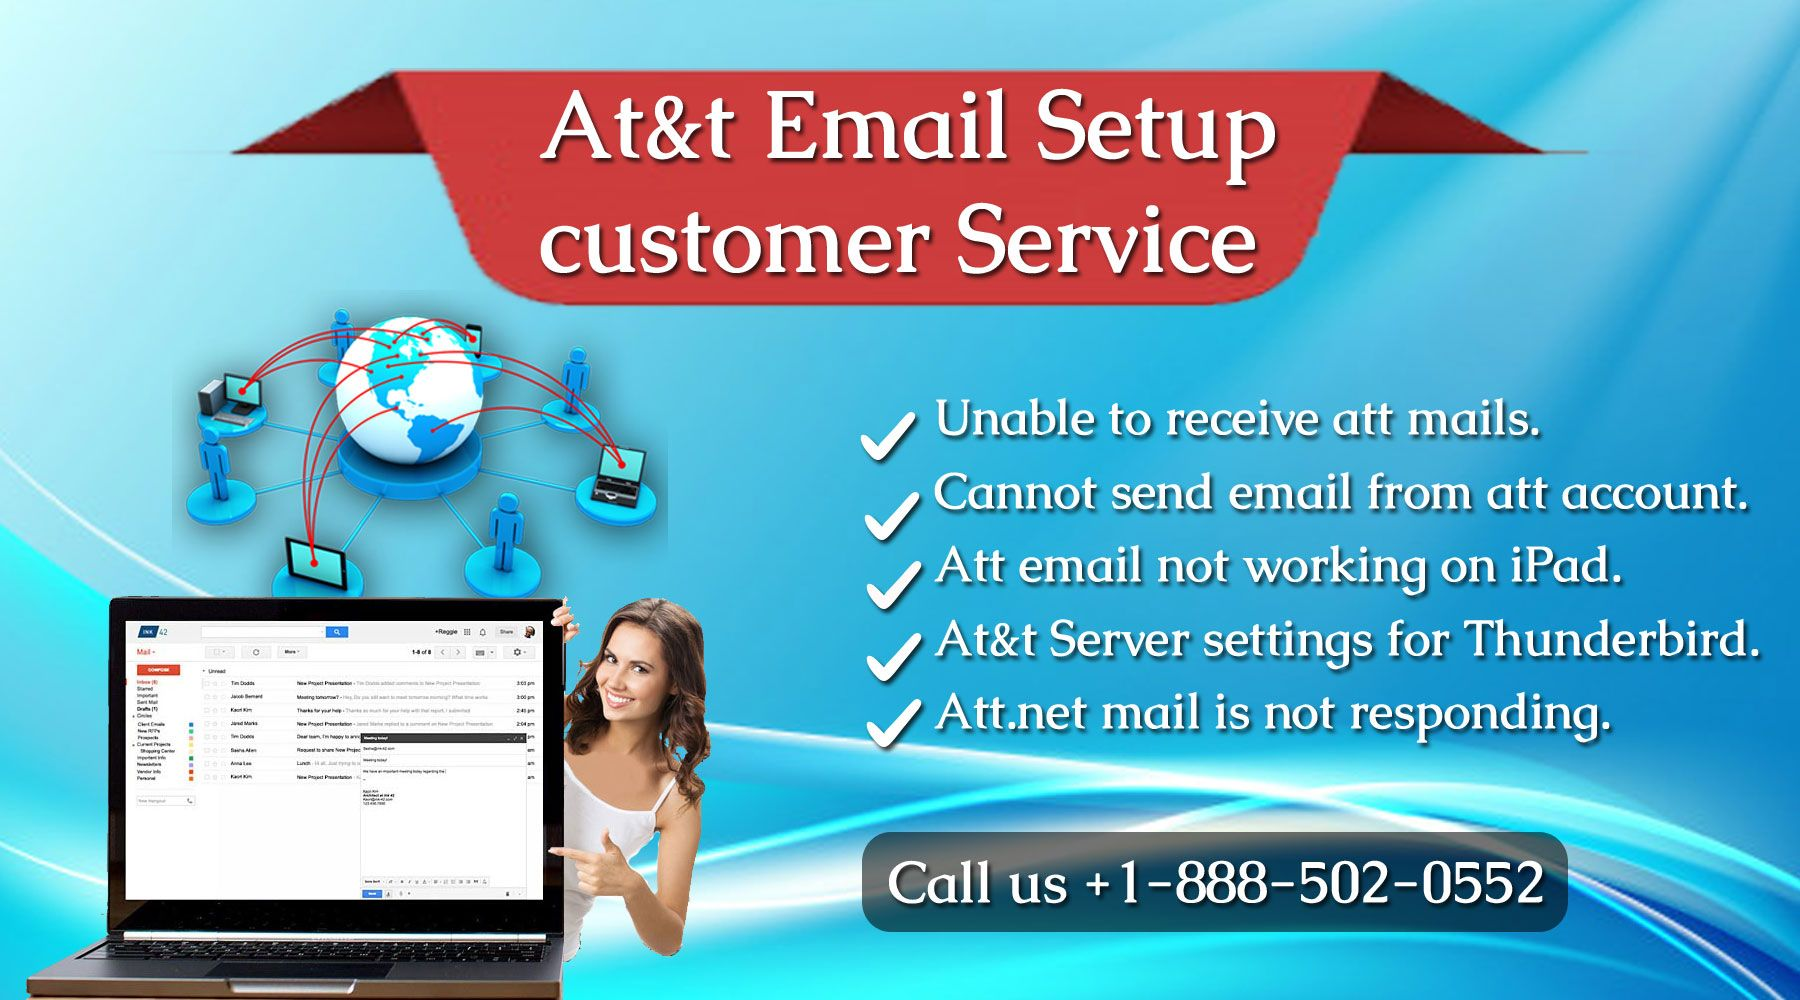 Pin by cgimart on HelpDesk Phone, Customer service, Numbers